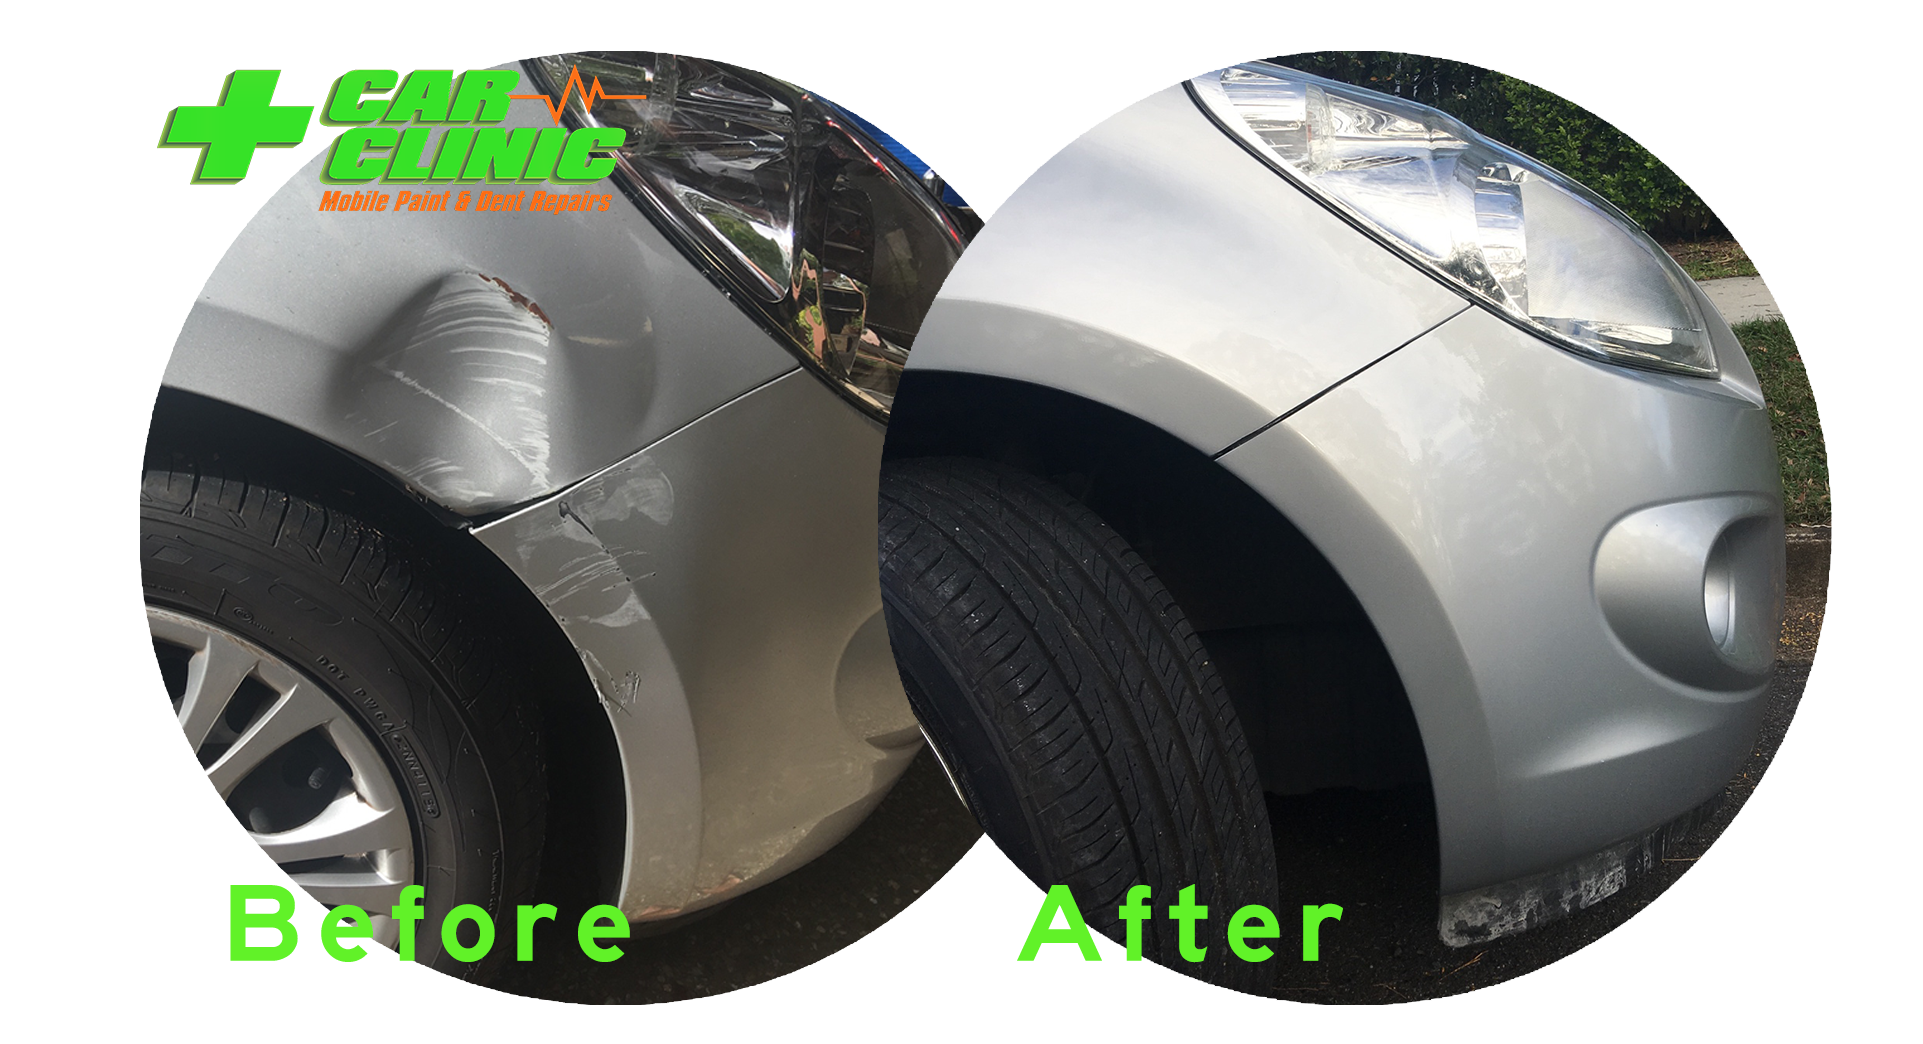 Mobile Paint & Dent Repairs - Brisbane - Before After Image 07